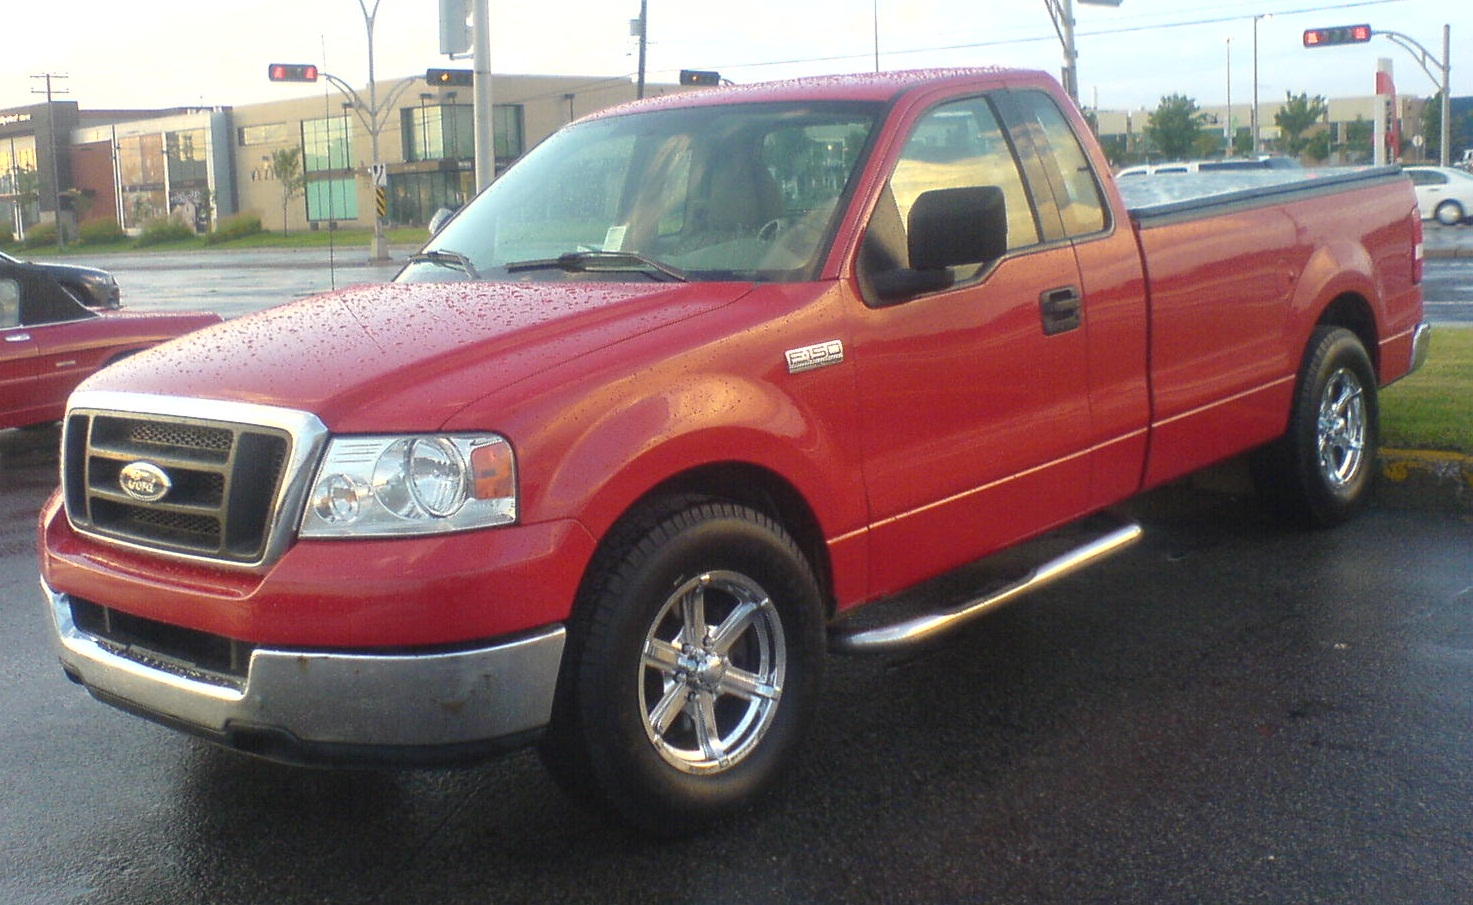 Ford F-150 Regular Cab Truck 2006